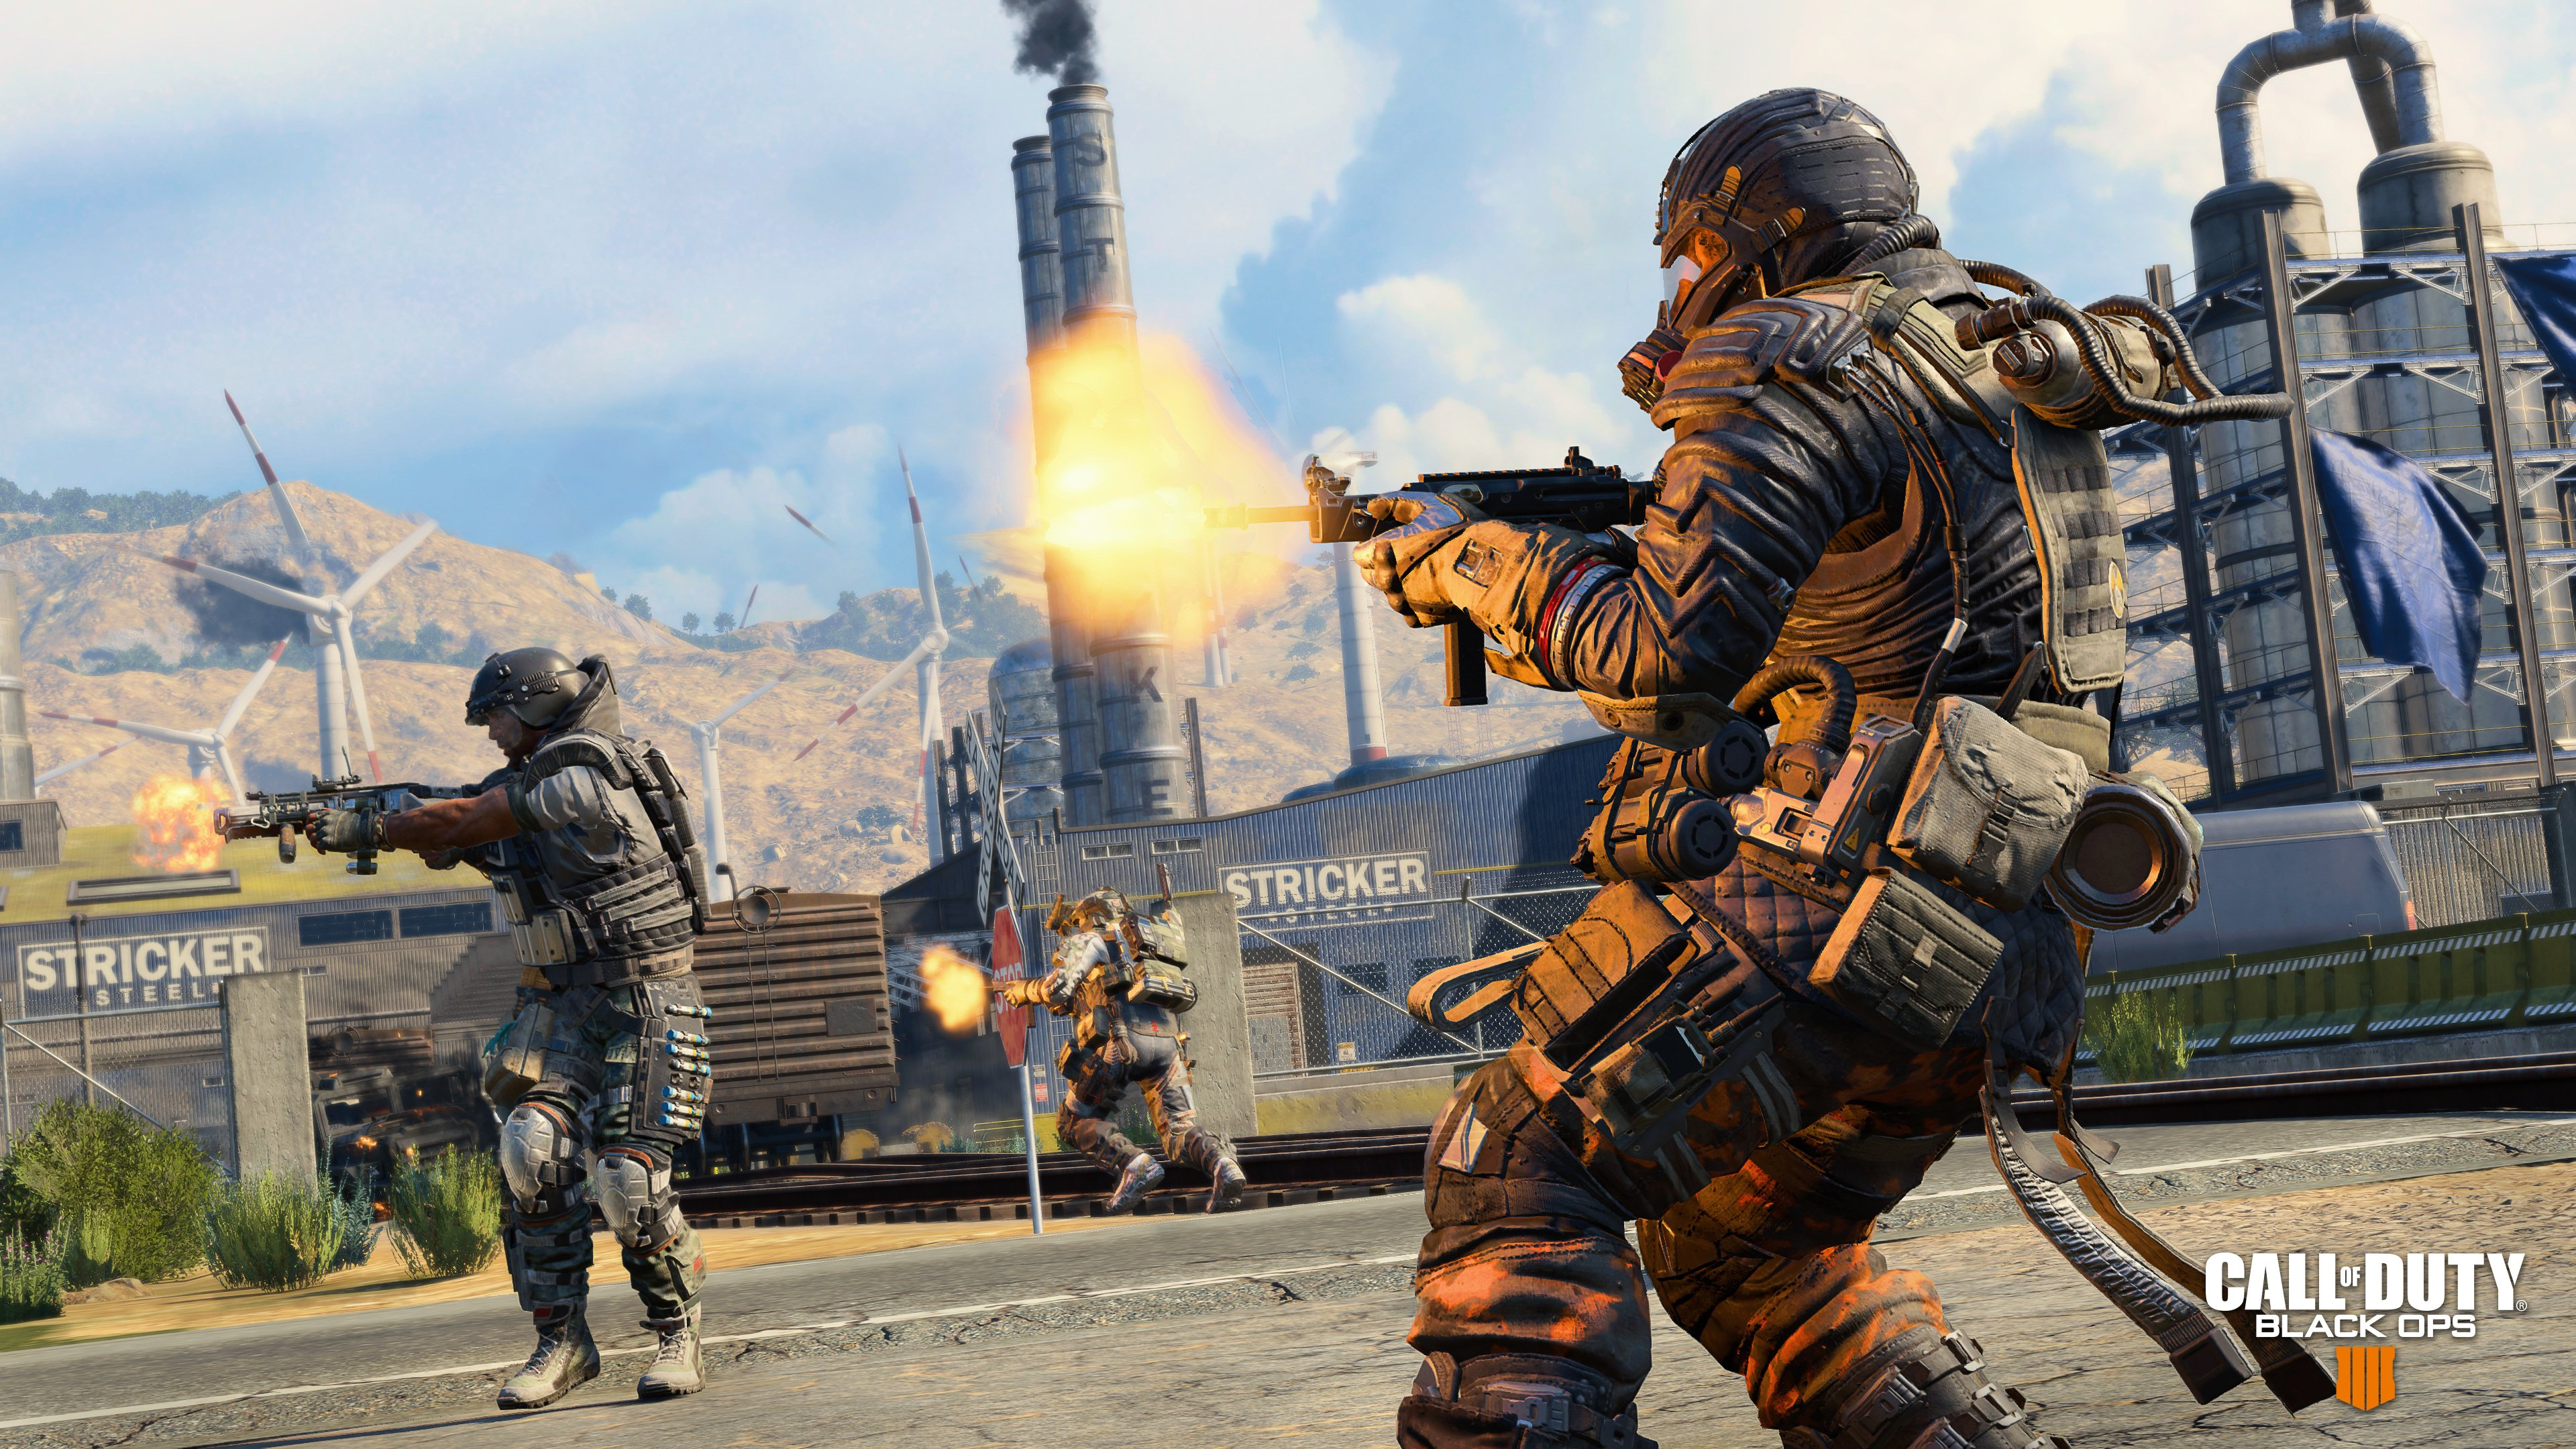 Call of duty: black ops 4 blackout is the best battle royal and first person shooter video game available. You can play this game individually.